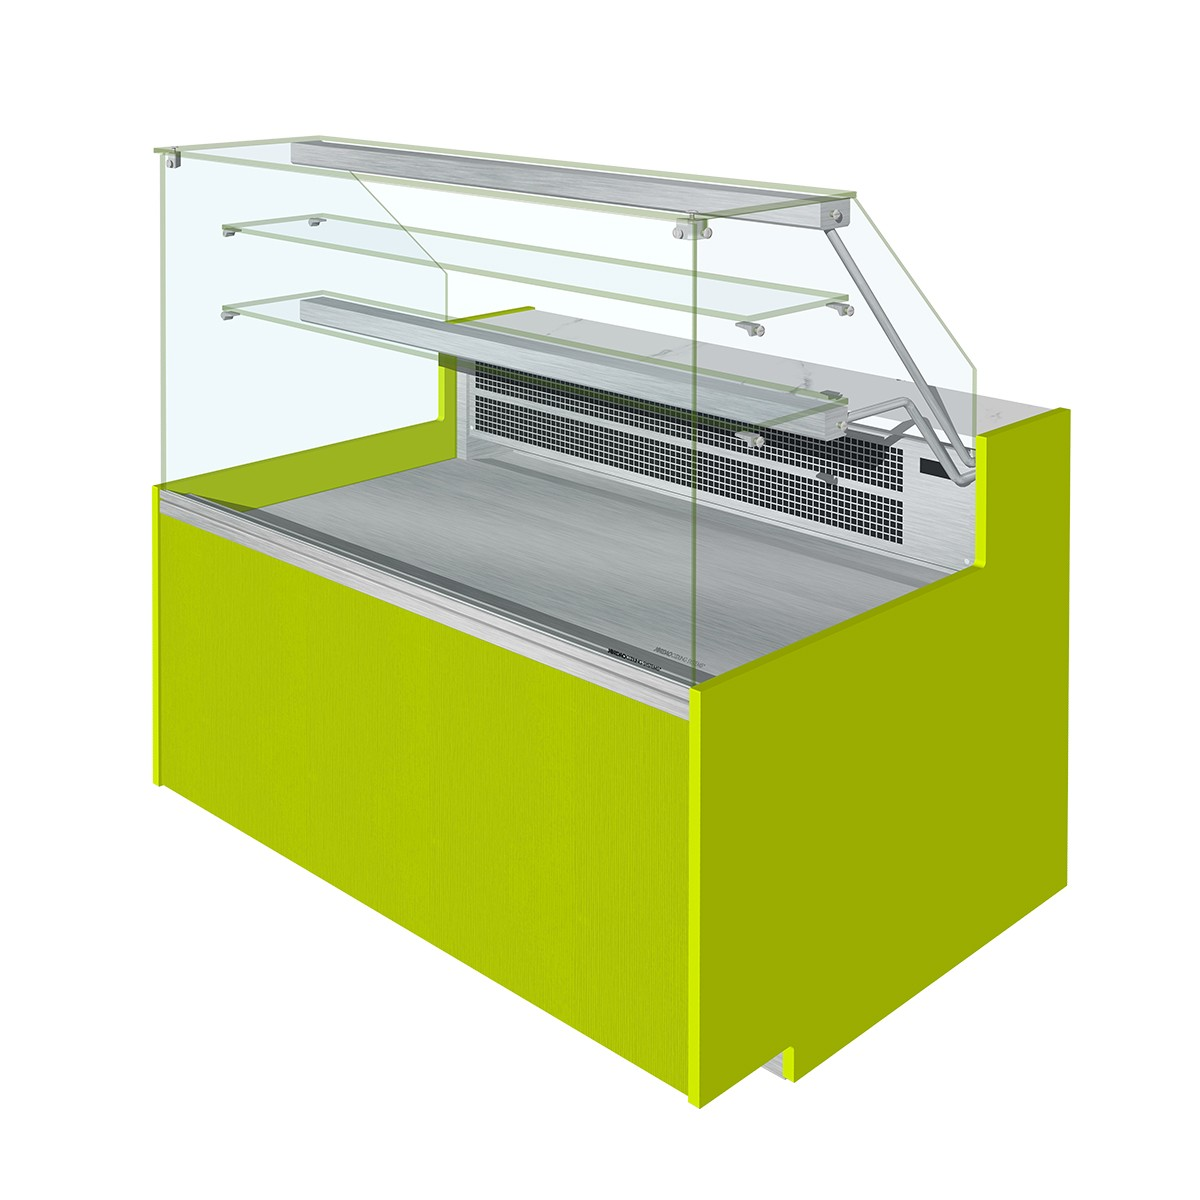 ELINE Flat Glass Serve Over Display Fan Assisted With Understorage